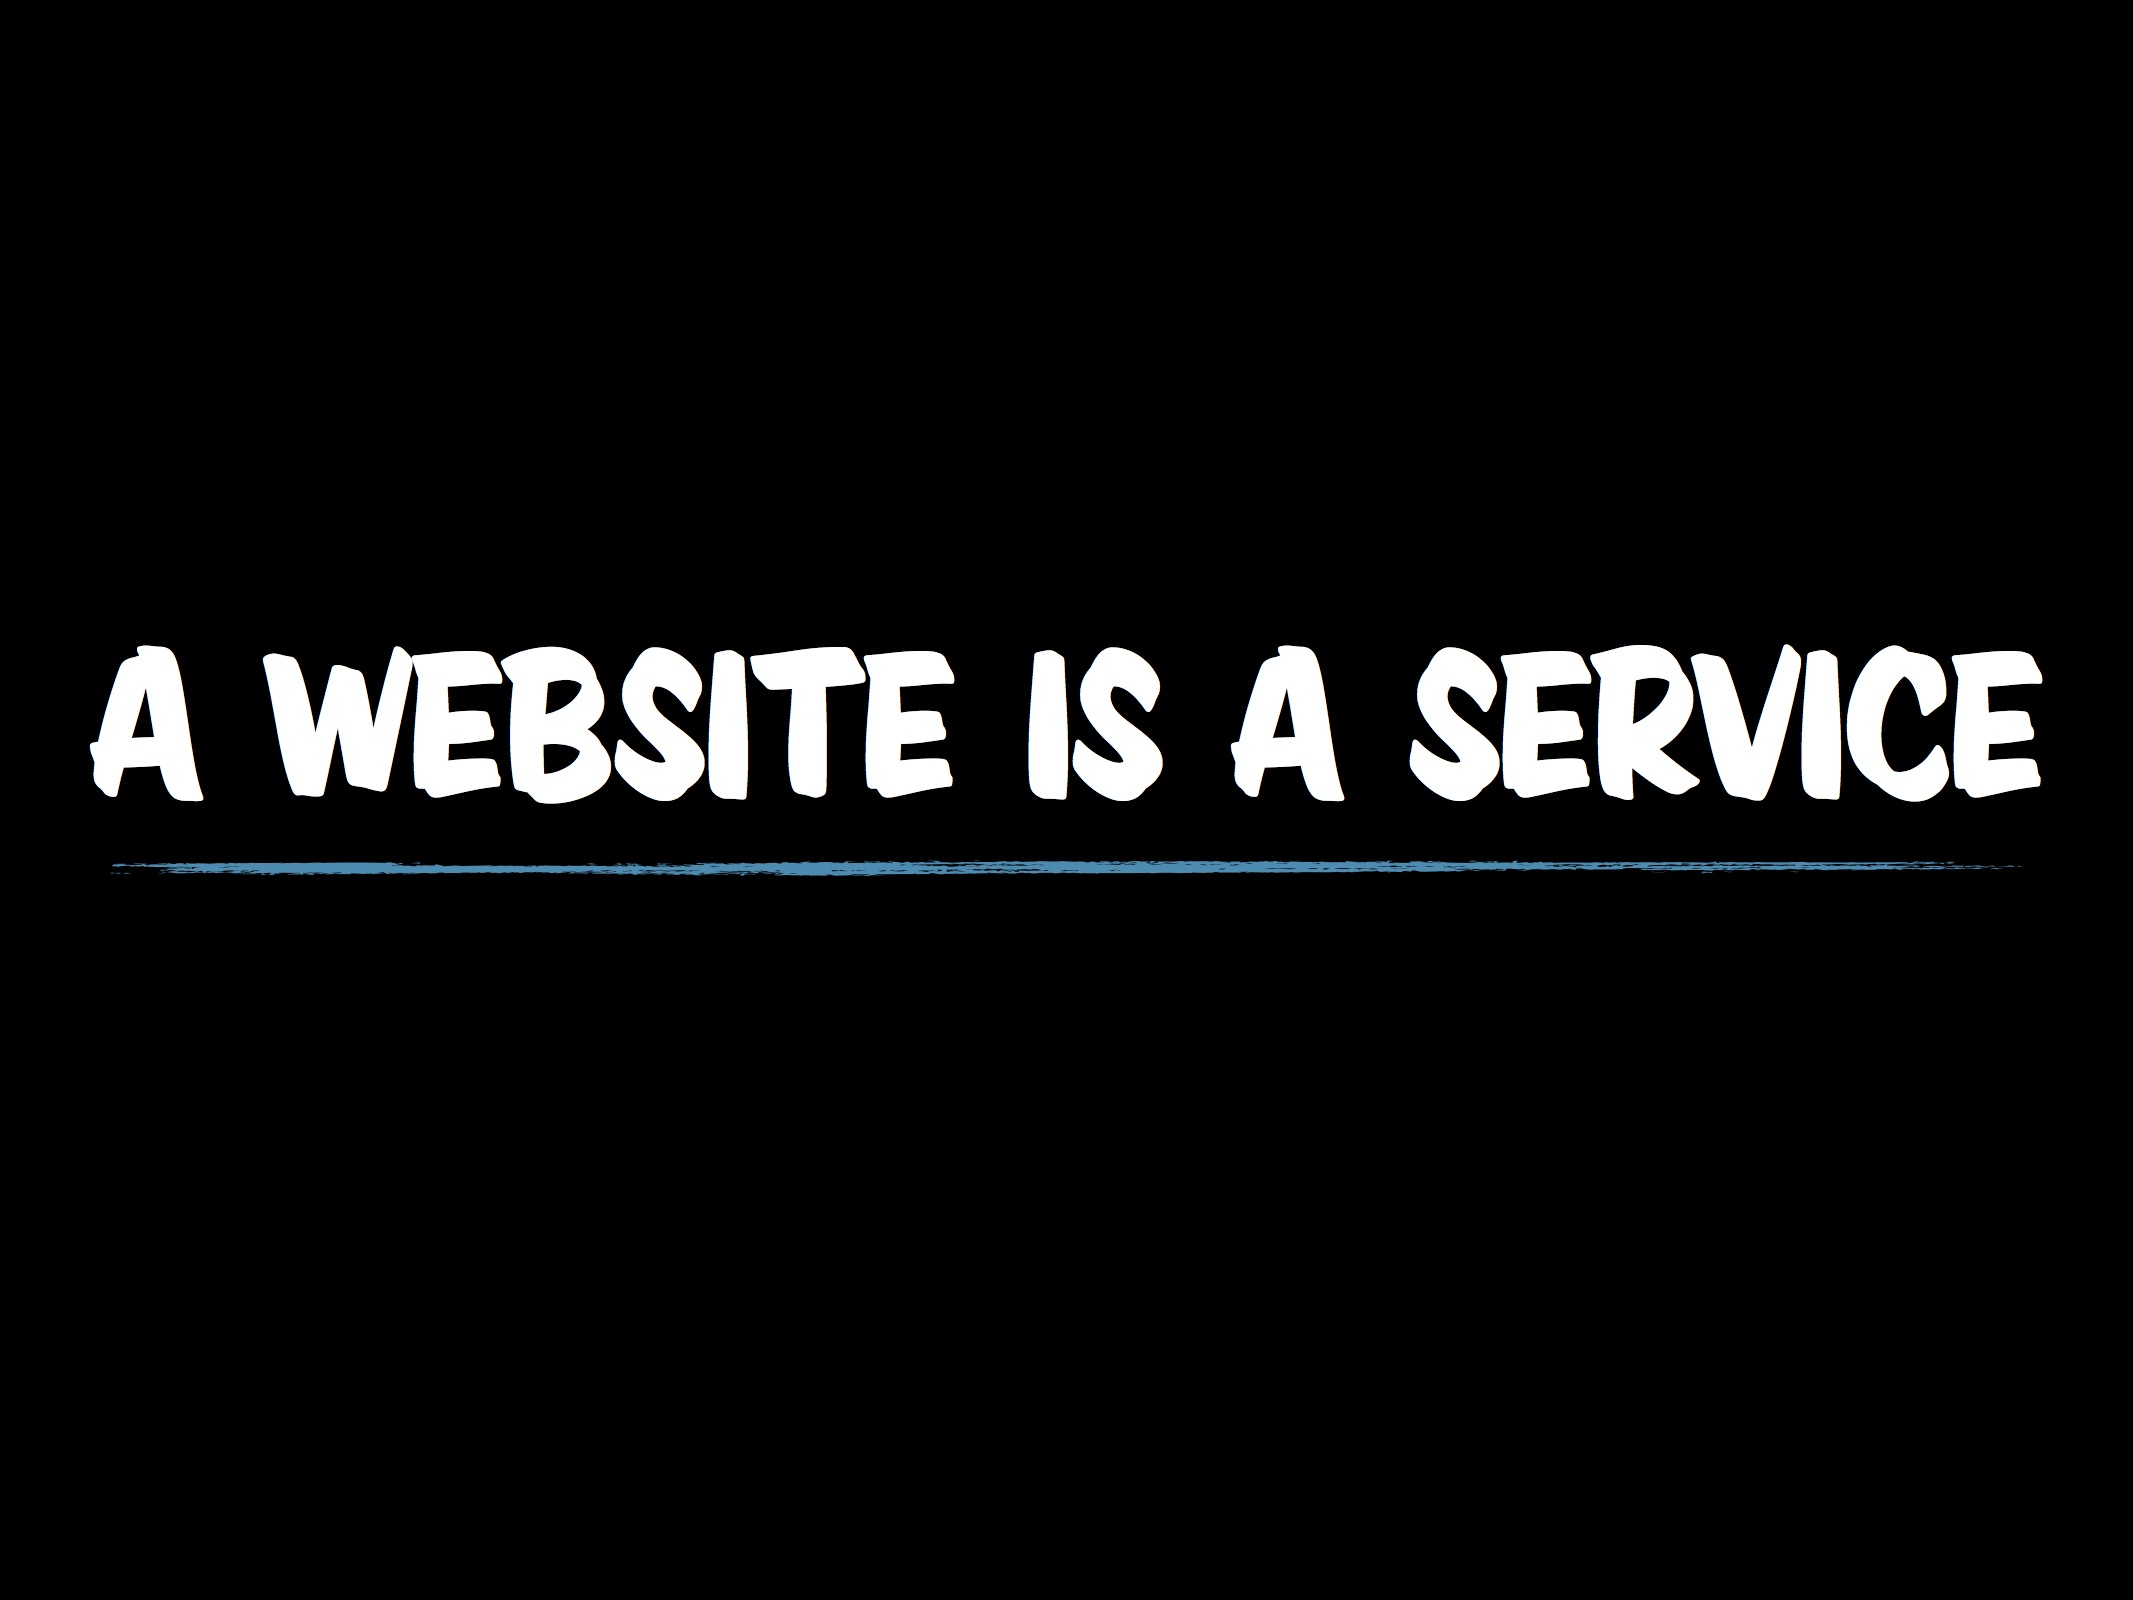 A website is a service